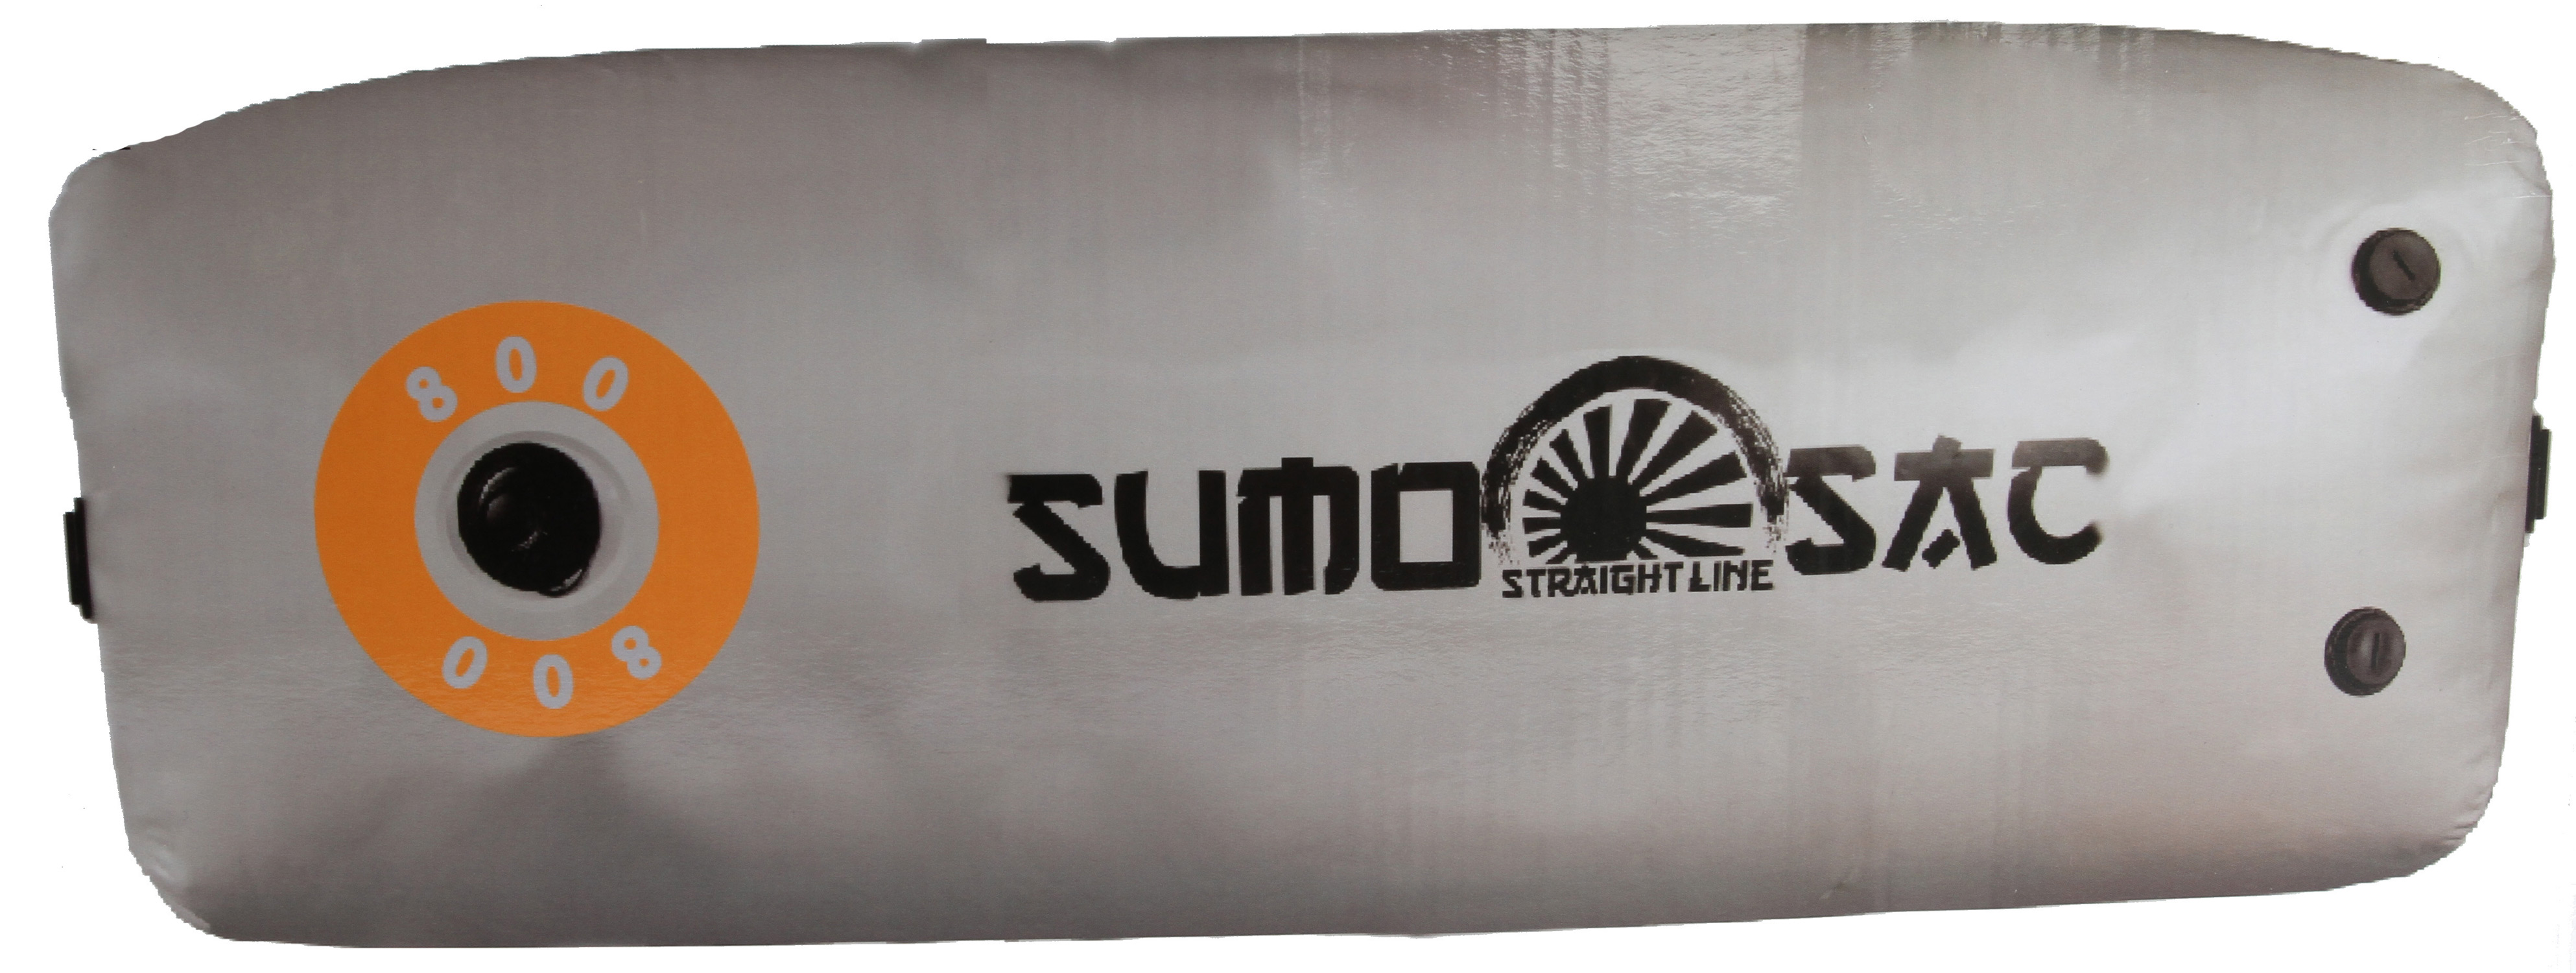 "Straight Line's mission is to give you options for creating larger wakes so you can have as much fun as possible. The SUMO Sacs are easy to use, durable and convenient. It is designed to work as a Plug a ~N Play option with your factory ballast system or on deck with our SUMO pumps. We offer an extensive selection of ballast to fit any boat and budget.* Size: 65""L x 18""W x 18""H * Capacity: 800lbs. * Ports: 1 LINK Valve * 3 NEW 1"" NPT Ports * SUMO Skin 1000D: SUMO Sacs are made with our own flexible and puncture-resistant fabric, a oeSUMO Skin.a  It has a durable 1000D polyester core that is heat laminated to lightweight PVC skins with a bonding agent. This sandwich construction is 150% stronger in tearing tests and 37% higher in tensile strength than our competitors, making it the most durable ballast bag available. * SUMO Seams: Every SUMO sac is double welded to ensure a watertight seal. Our tough SUMO Skin is overlapped and hot air welded. You can see the smooth and clean seams on the outside of every bag, and a second welding operation applies an inch wide sealing tape to the inside of every seam. * LINK Valve: Our unique LINKTM system provides a hassle free connection to your Sumo Pump, keeping your boat dry on the inside. The LinkTM Valve is watertight and can also be used as a convenient way to purge air from your bag. * 1a NPT Valves: NEW and Improved threaded valves provide a perfect water tight seal, and have been pressure tested up to 6 PSI. Our 1a  NPT ports allow built in ballast systems to fill, drain and vent quickly for hassle free operation. - $134.95"